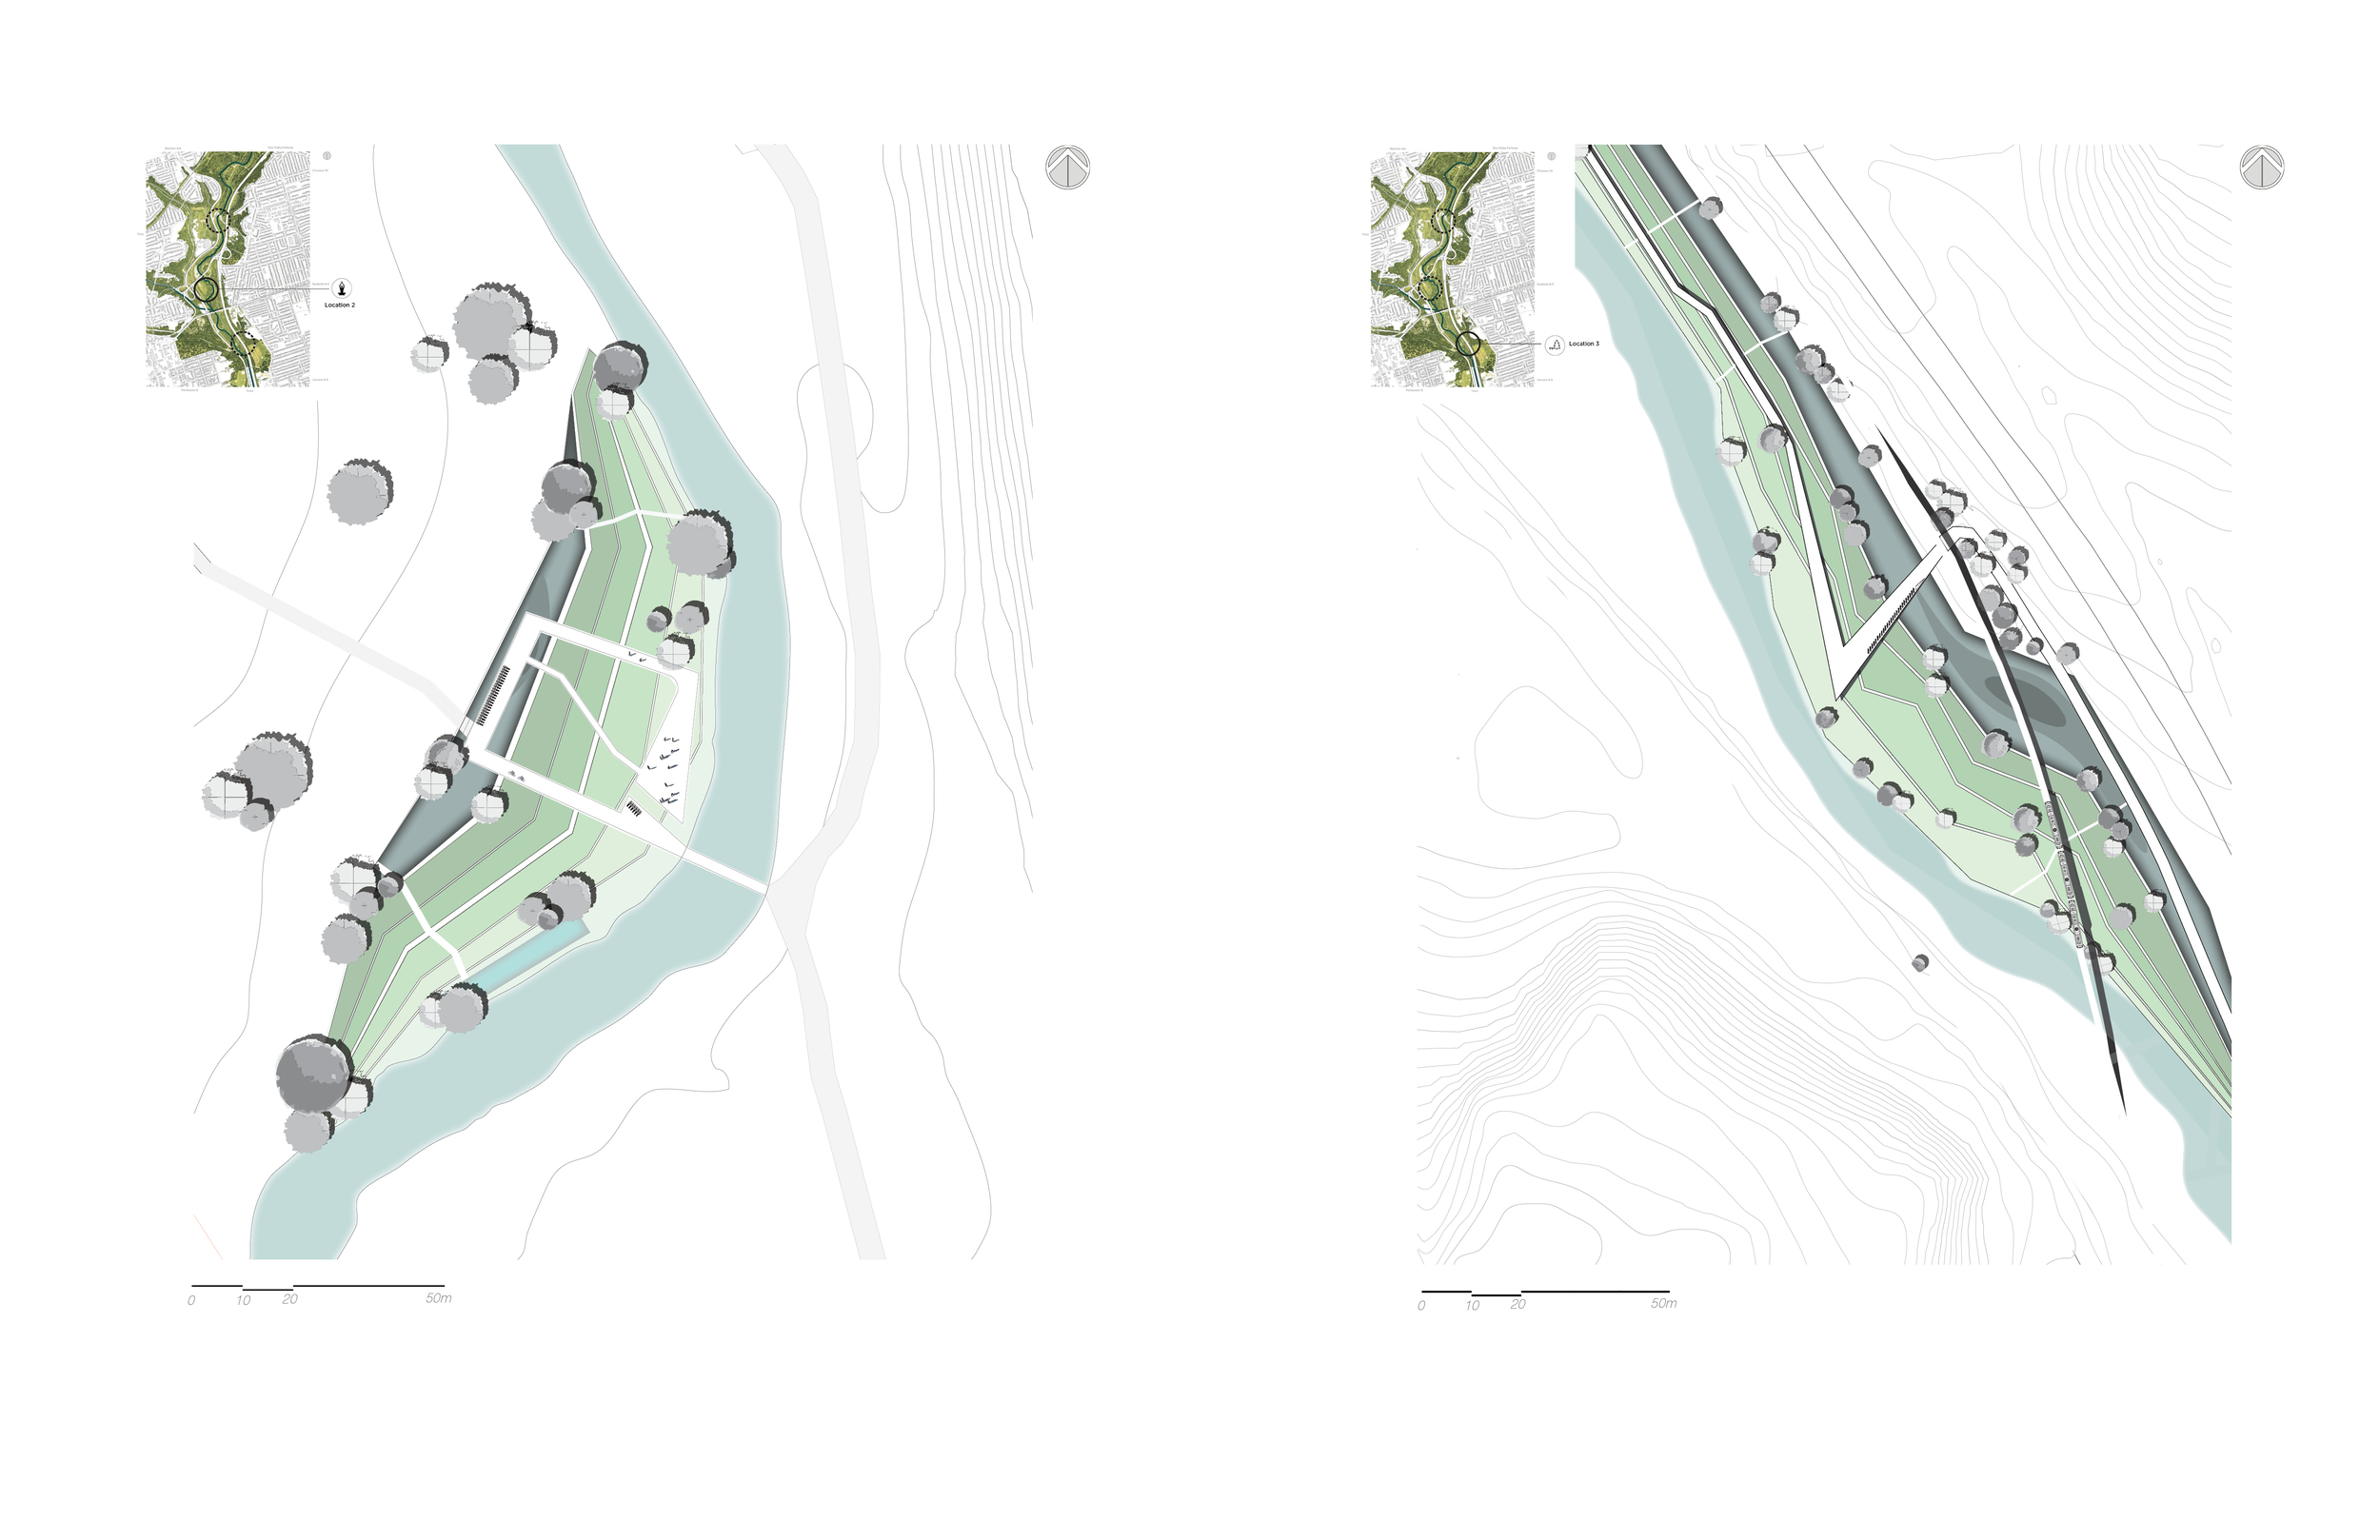 Figure 7 (L): Site plan location 2 showing the public gathering areas in front of the River's edge, the elevated deck for yoga activities, and the bridge connecting the program to the existing trail.  Figure 8 (R): Site plan location 3 showing the designed pedestrian boardwalk as well as the rest area for pedestrians and cyclists.